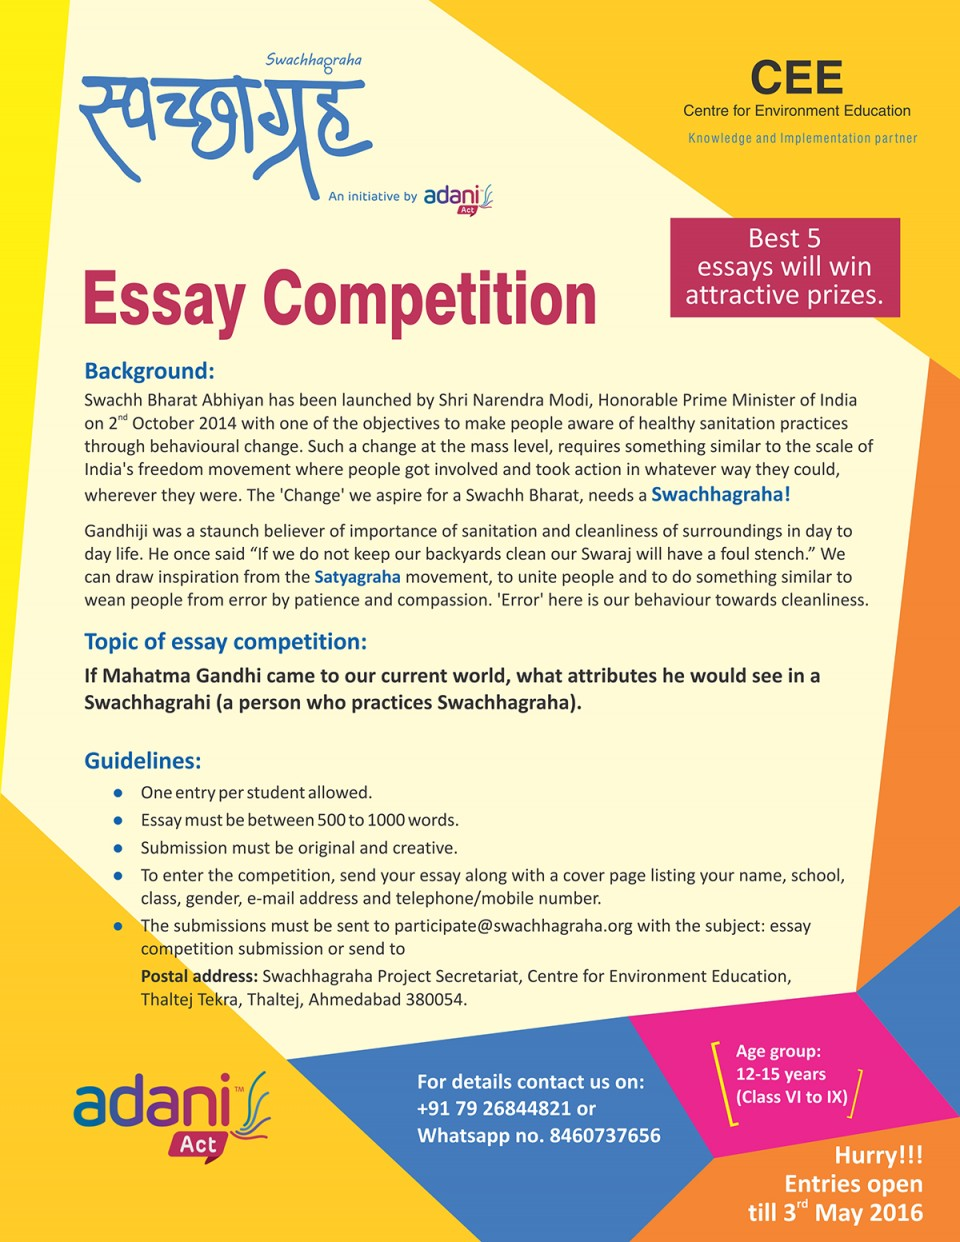 011 20180129171946essay20competition Essay About Cleanliness In School Phenomenal Campaign On Toilets And Its Surrounding Persuasive 960